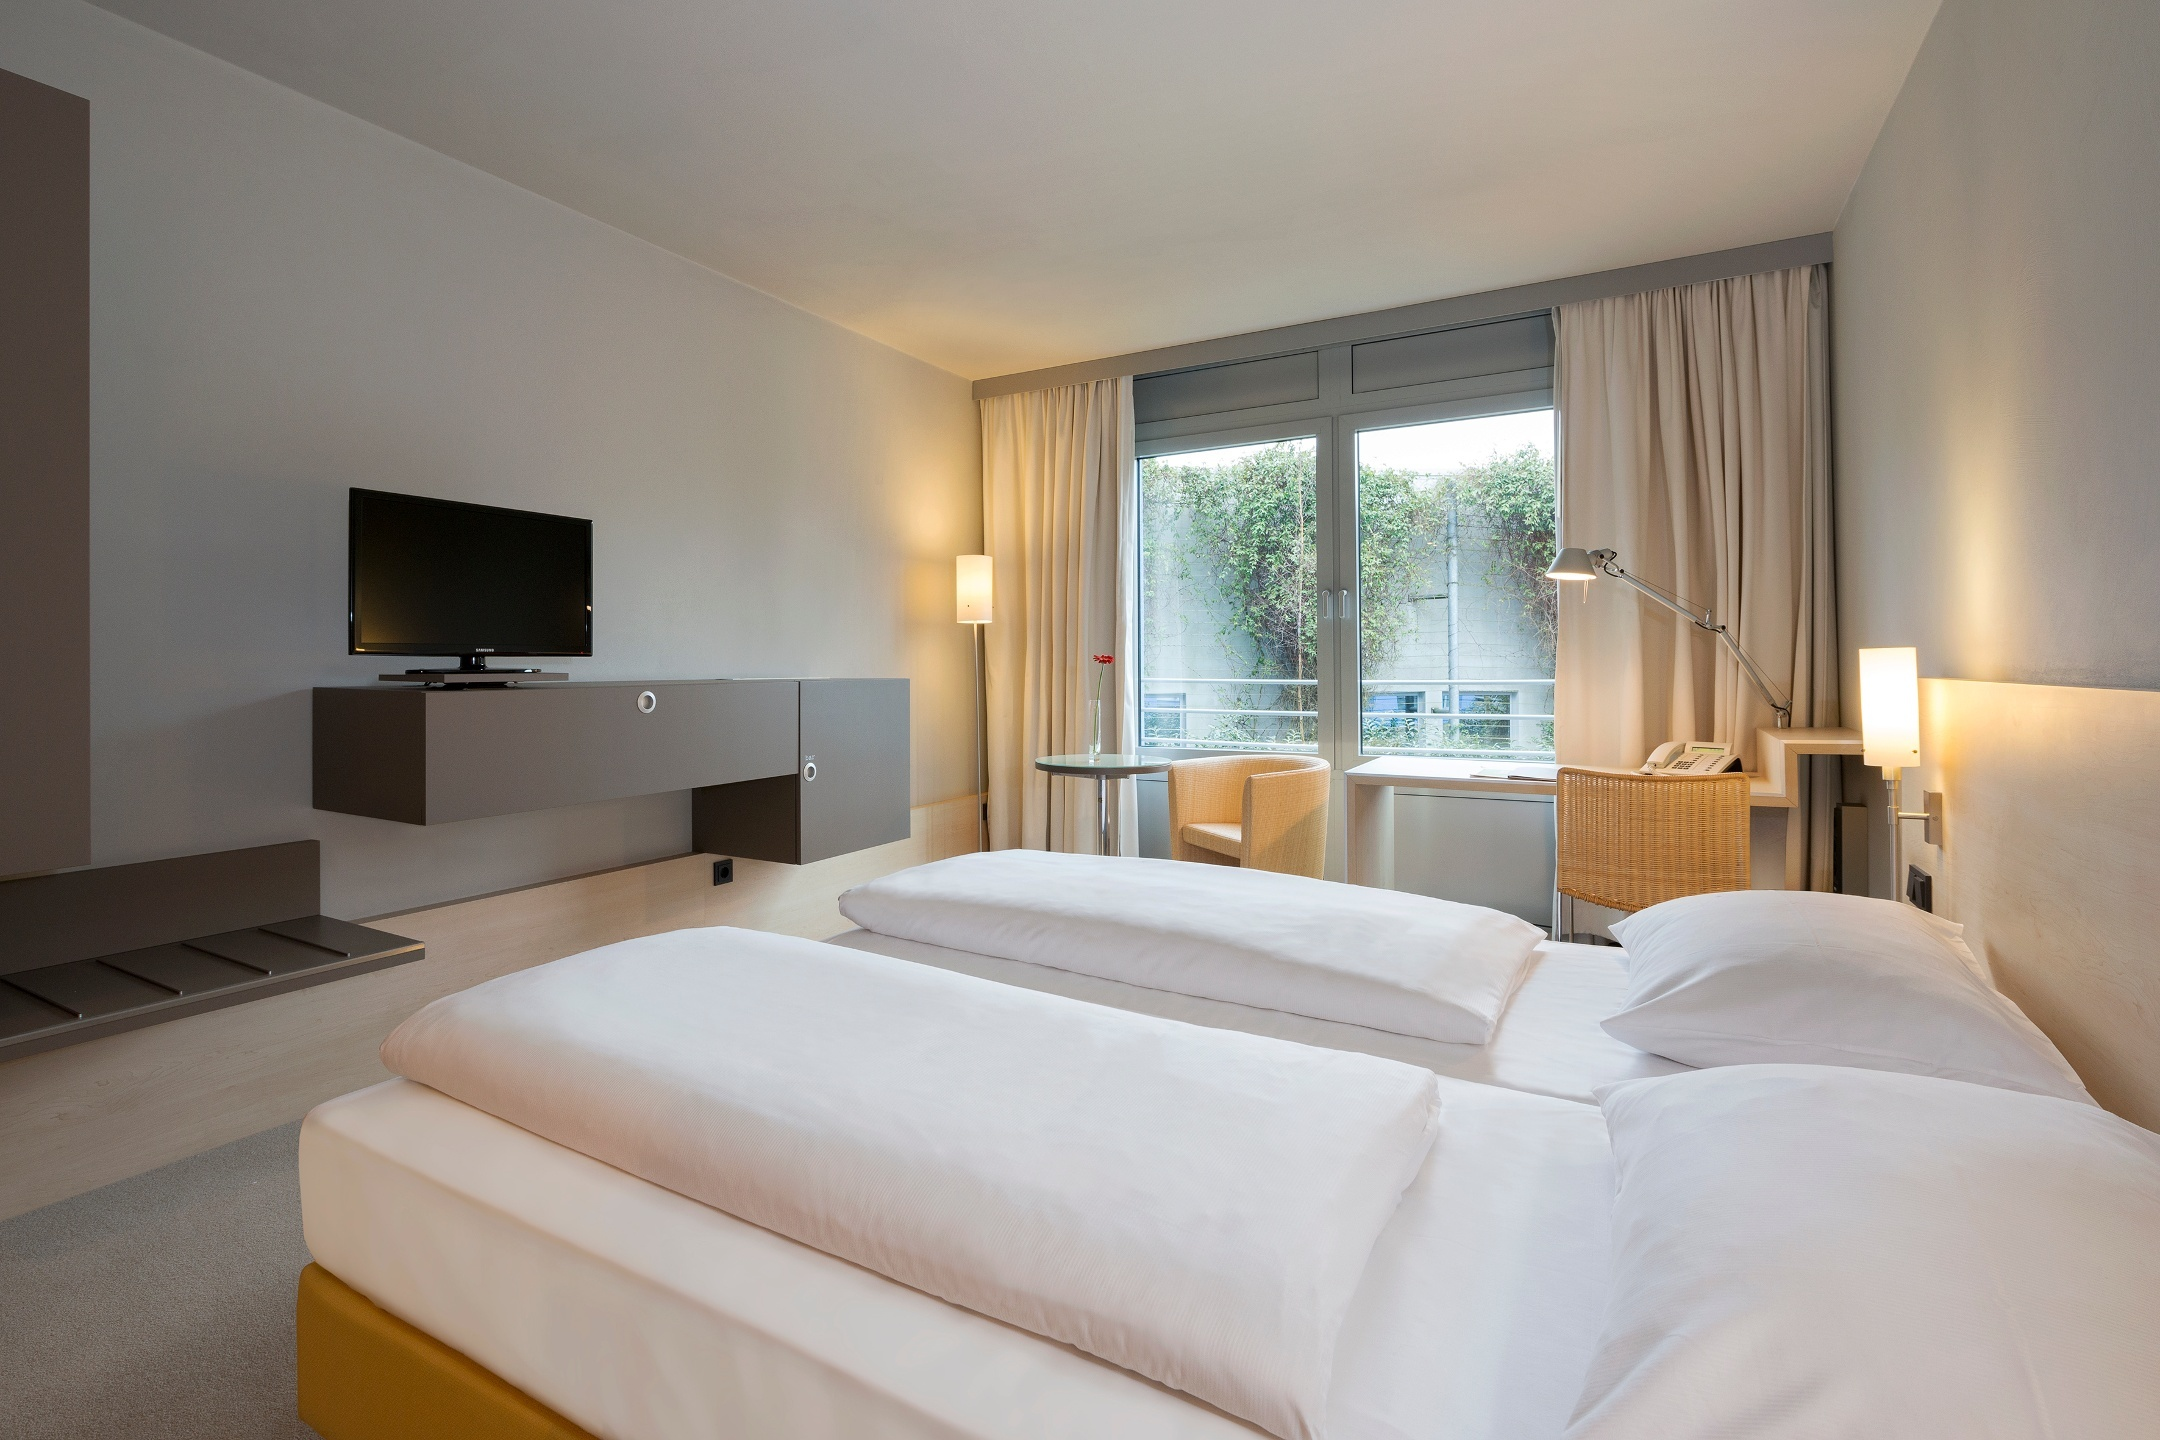 Interior view of a Economy Room with a double bed and cozy furniture in the ATLANTIC Hotel Universum